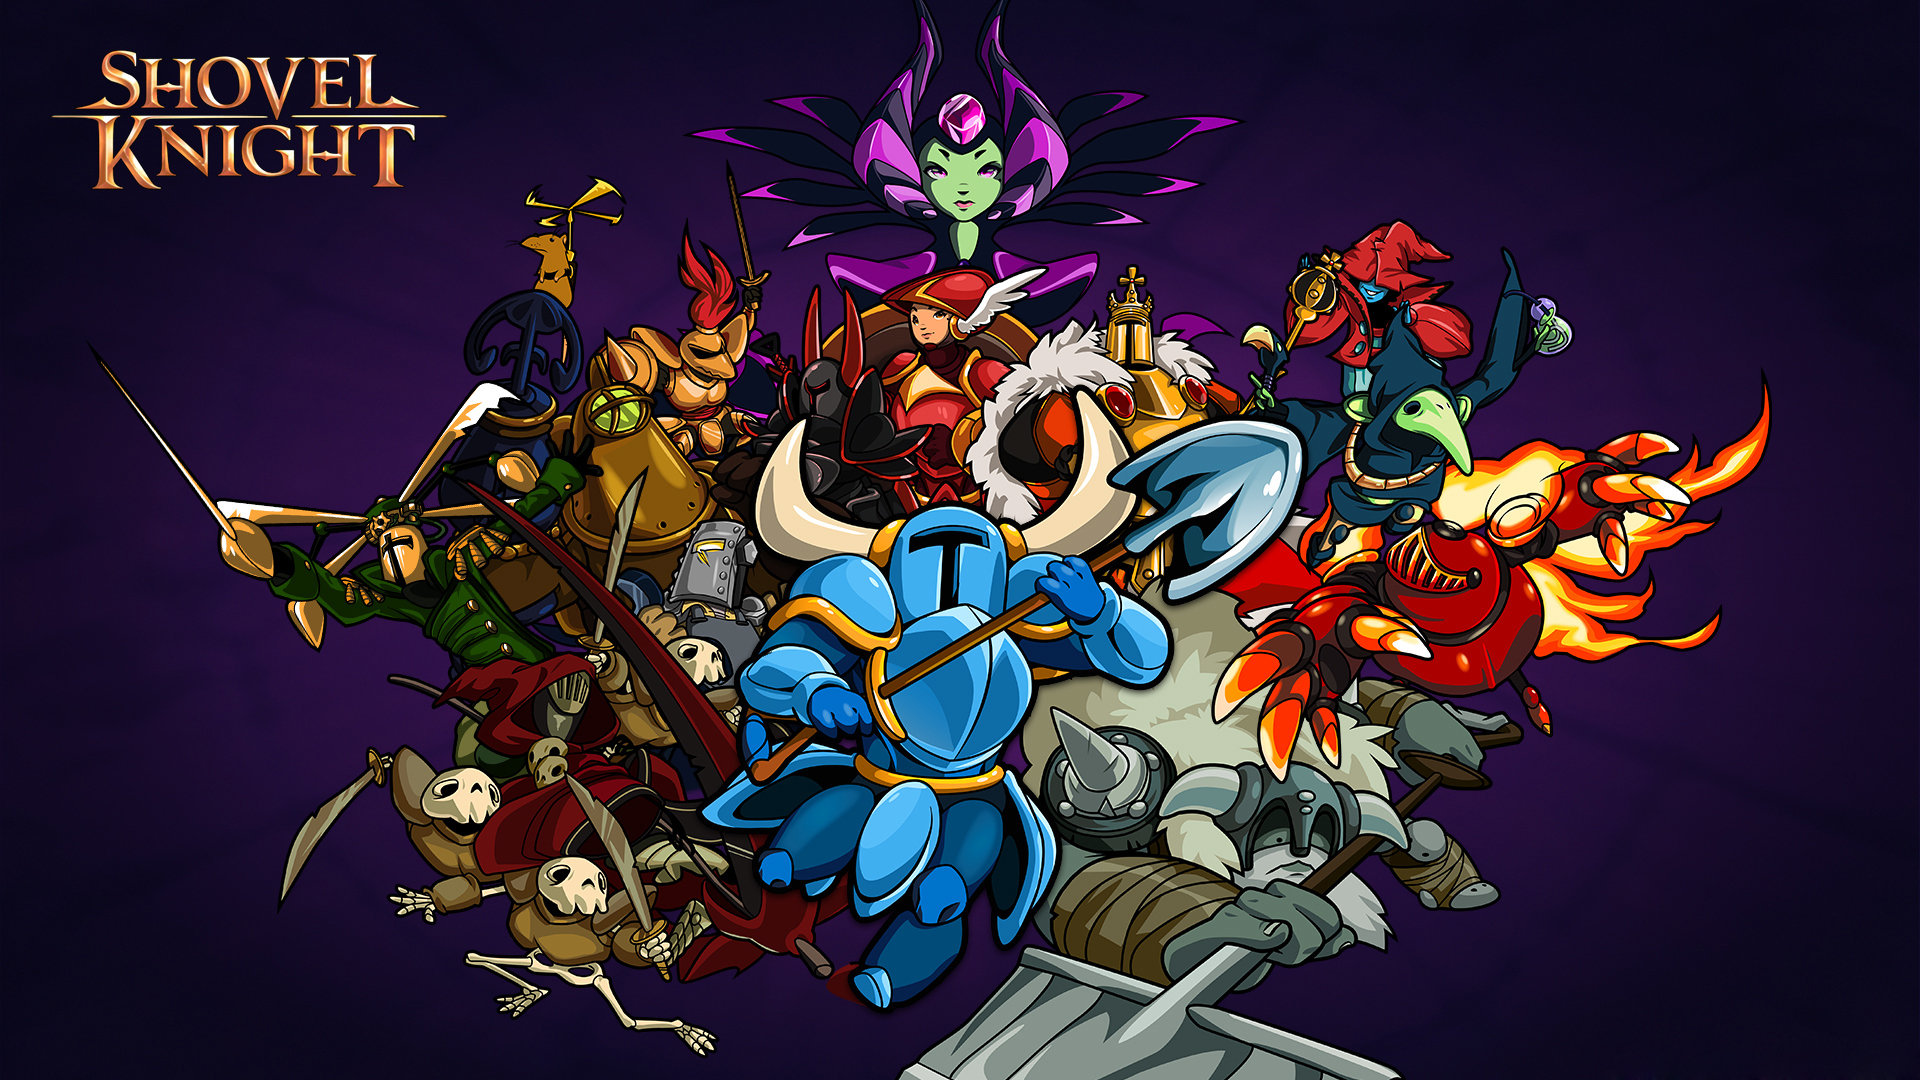 Shovel-knight-video-game-wallpaper